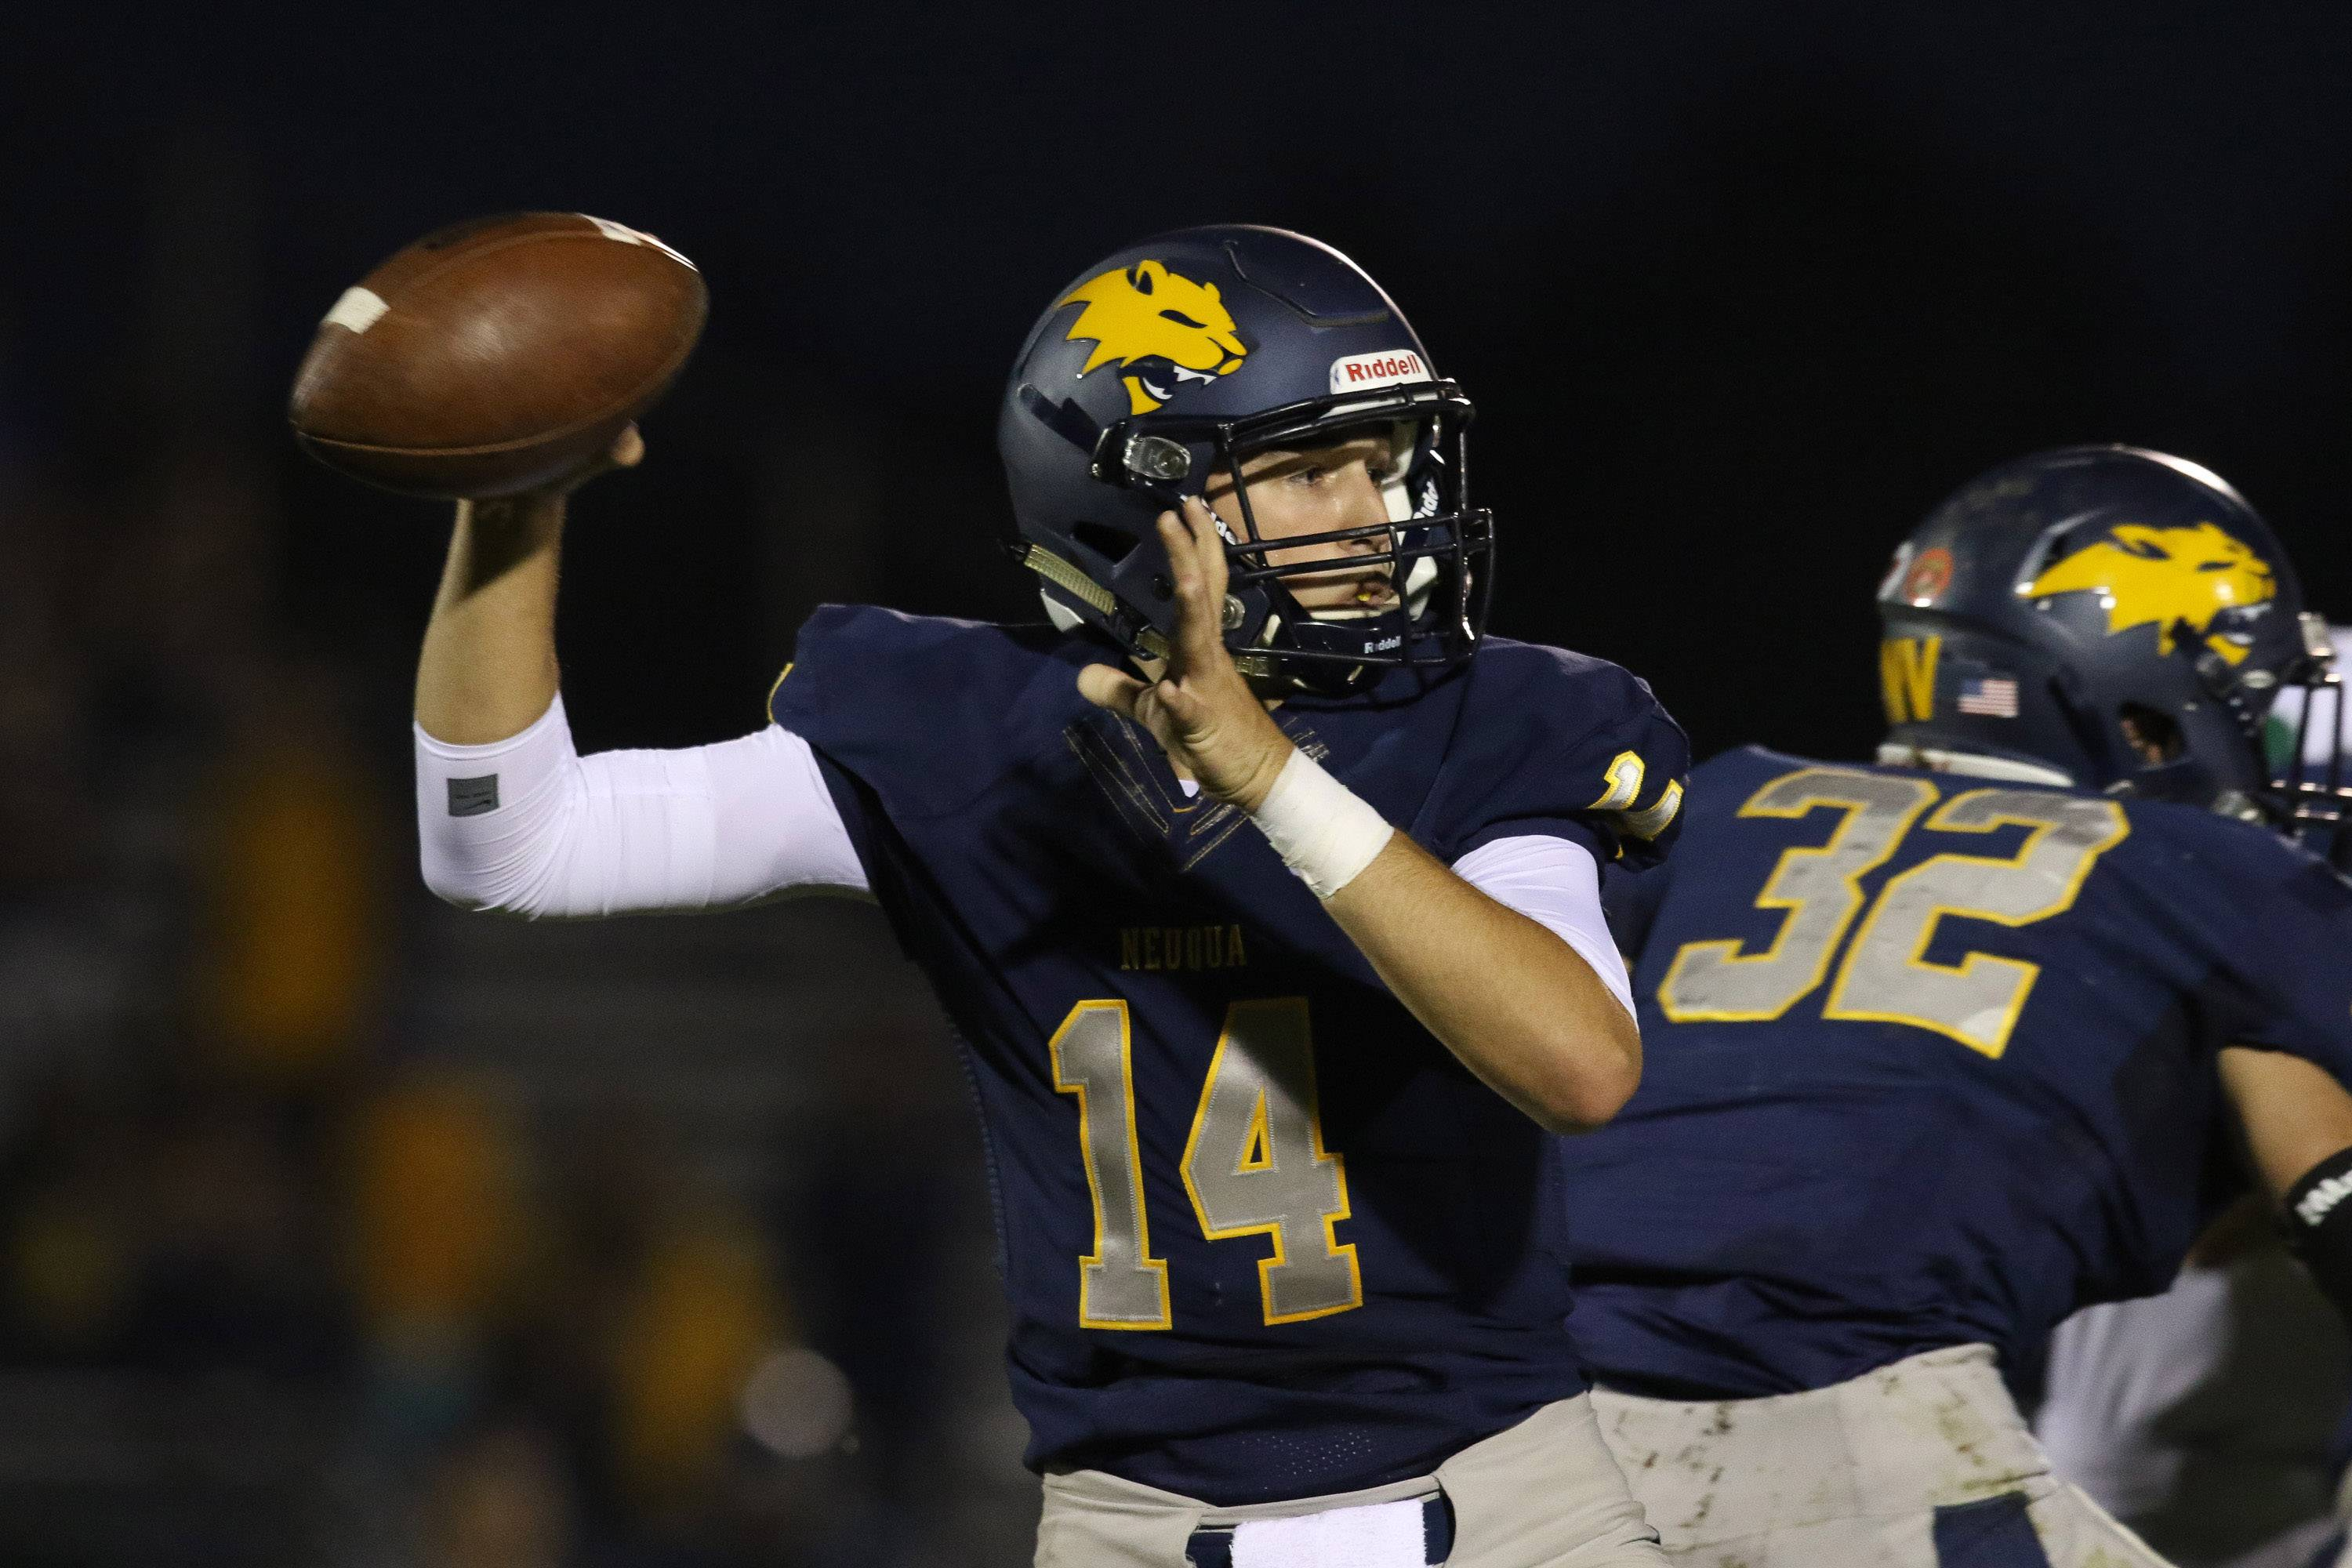 Neuqua Valley quarterback Jake Eskoff (14) drops back to pass against Glenbard West at Neuqua Valley High School in Naperville, IL on Saturday, October 29, 2016